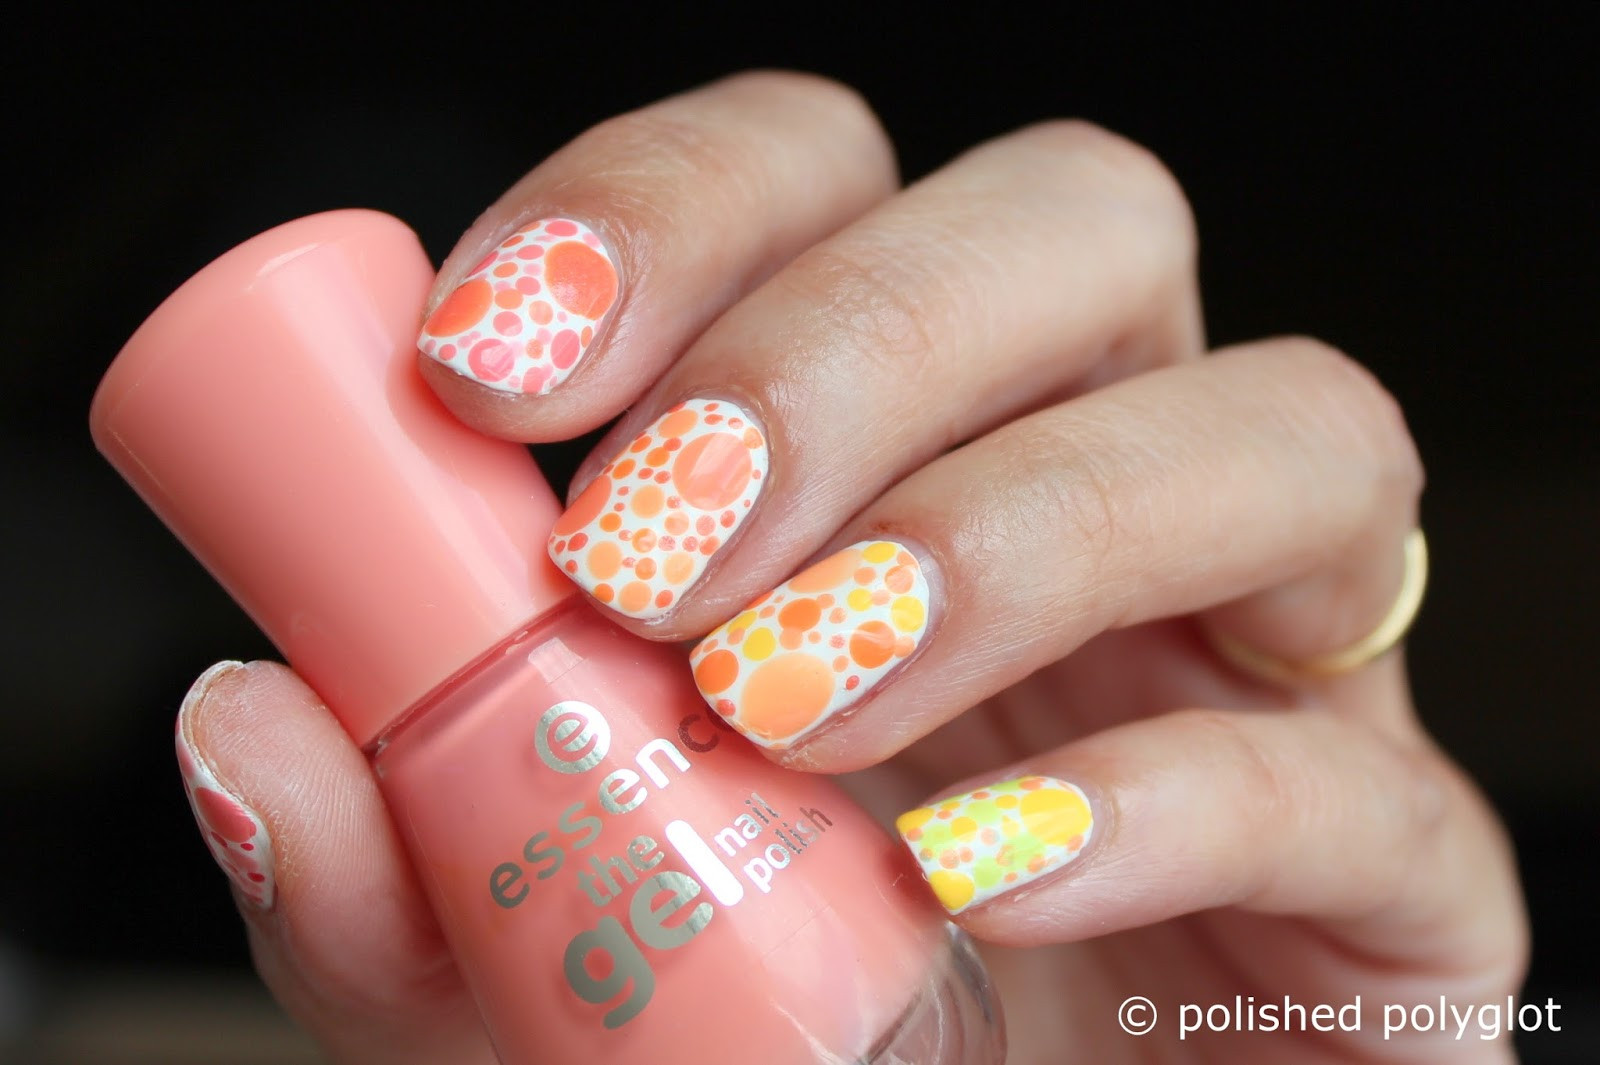 Peach Nail Designs  Nail art │Designs for short nails Peach or lemon skittles